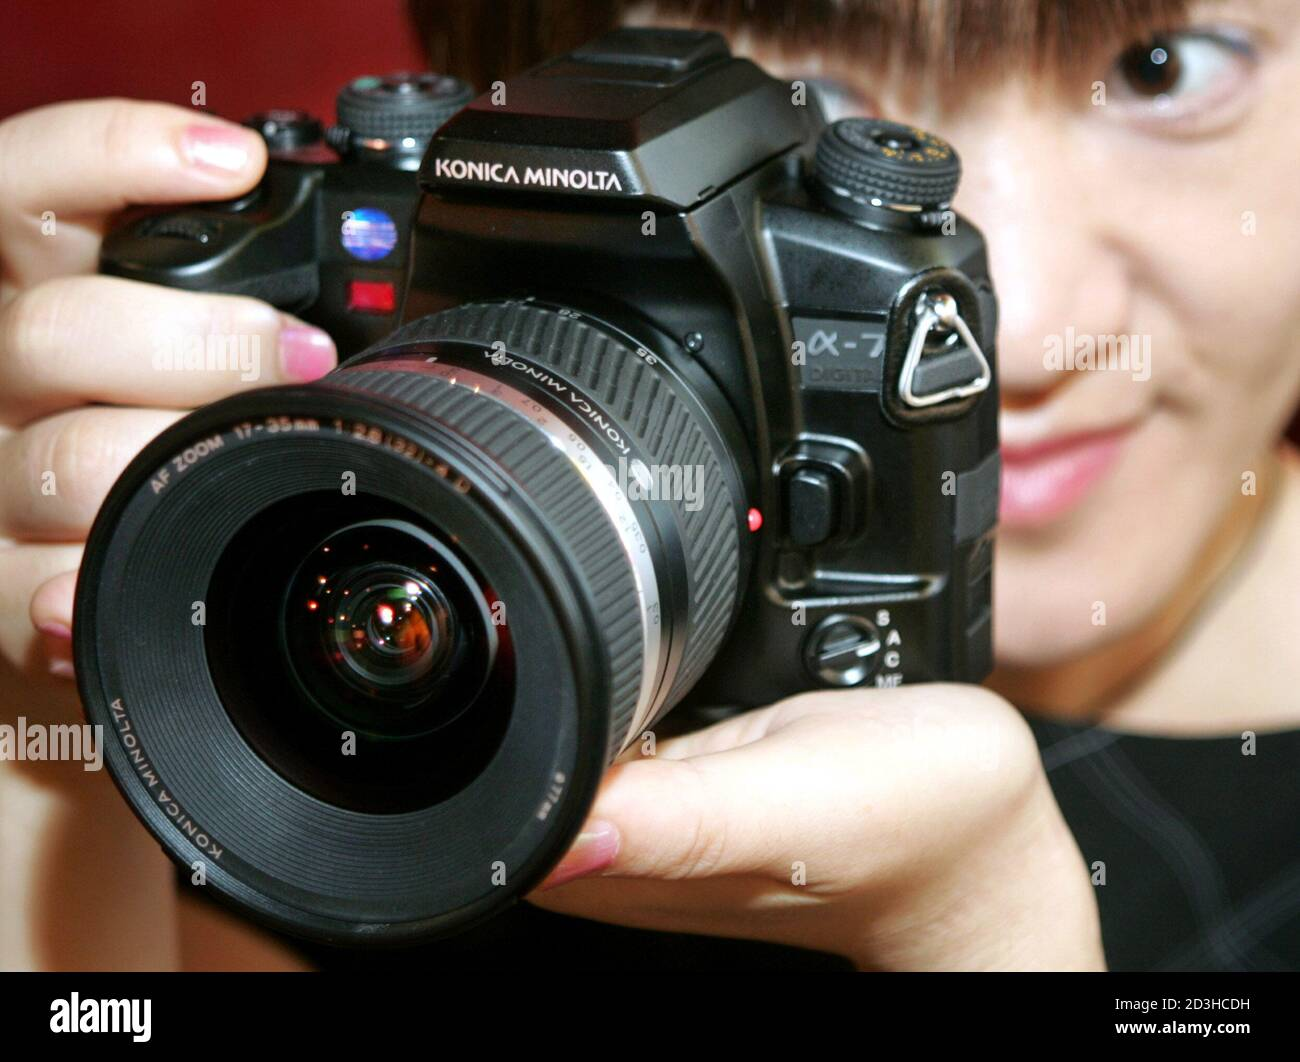 Japanese precision equipment maker Konica Minolta Holdings Inc. unveils its new digital single-lens reflex (SLR) camera 'Alpha-7 Digital' in Tokyo September 15, 2004. The camera with interchangable lenses is the world's first product equipped with technology which stabilizes image by shifting the CCD sensor inside the body to compensate for camera movements, the company said. Stock Photo